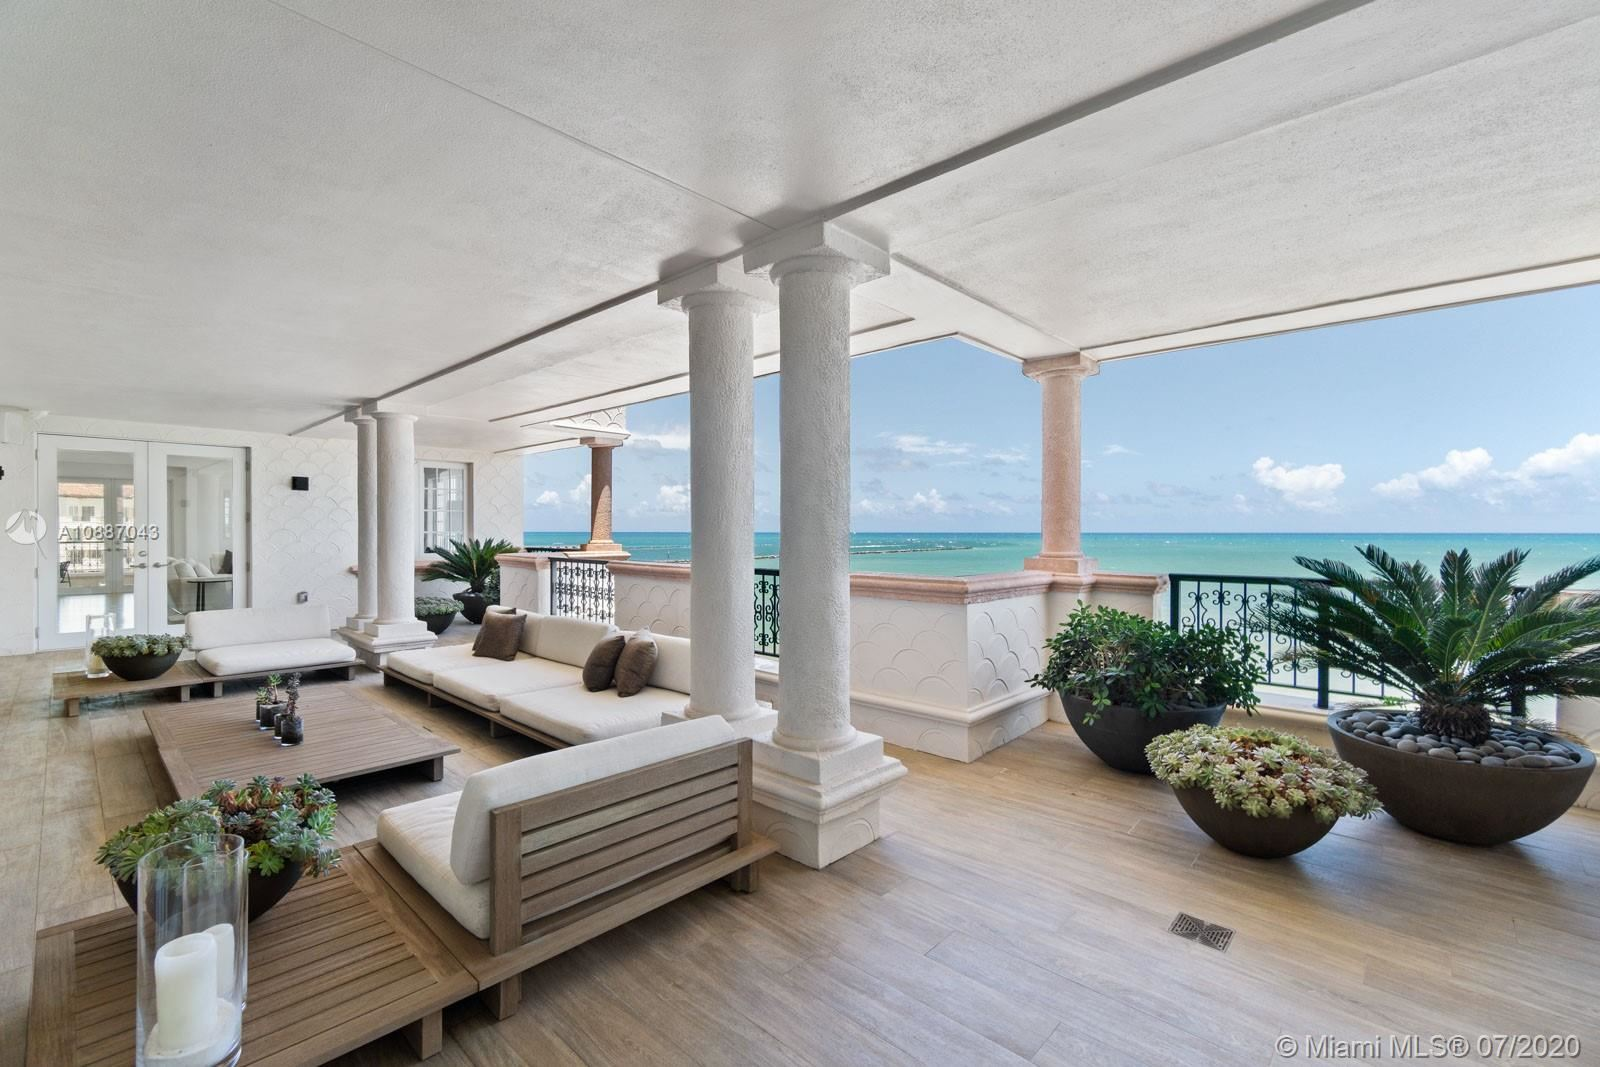 Photo 16 of Listing MLS a10887043 in 7764 Fisher Island Dr #7764 Miami Beach FL 33109